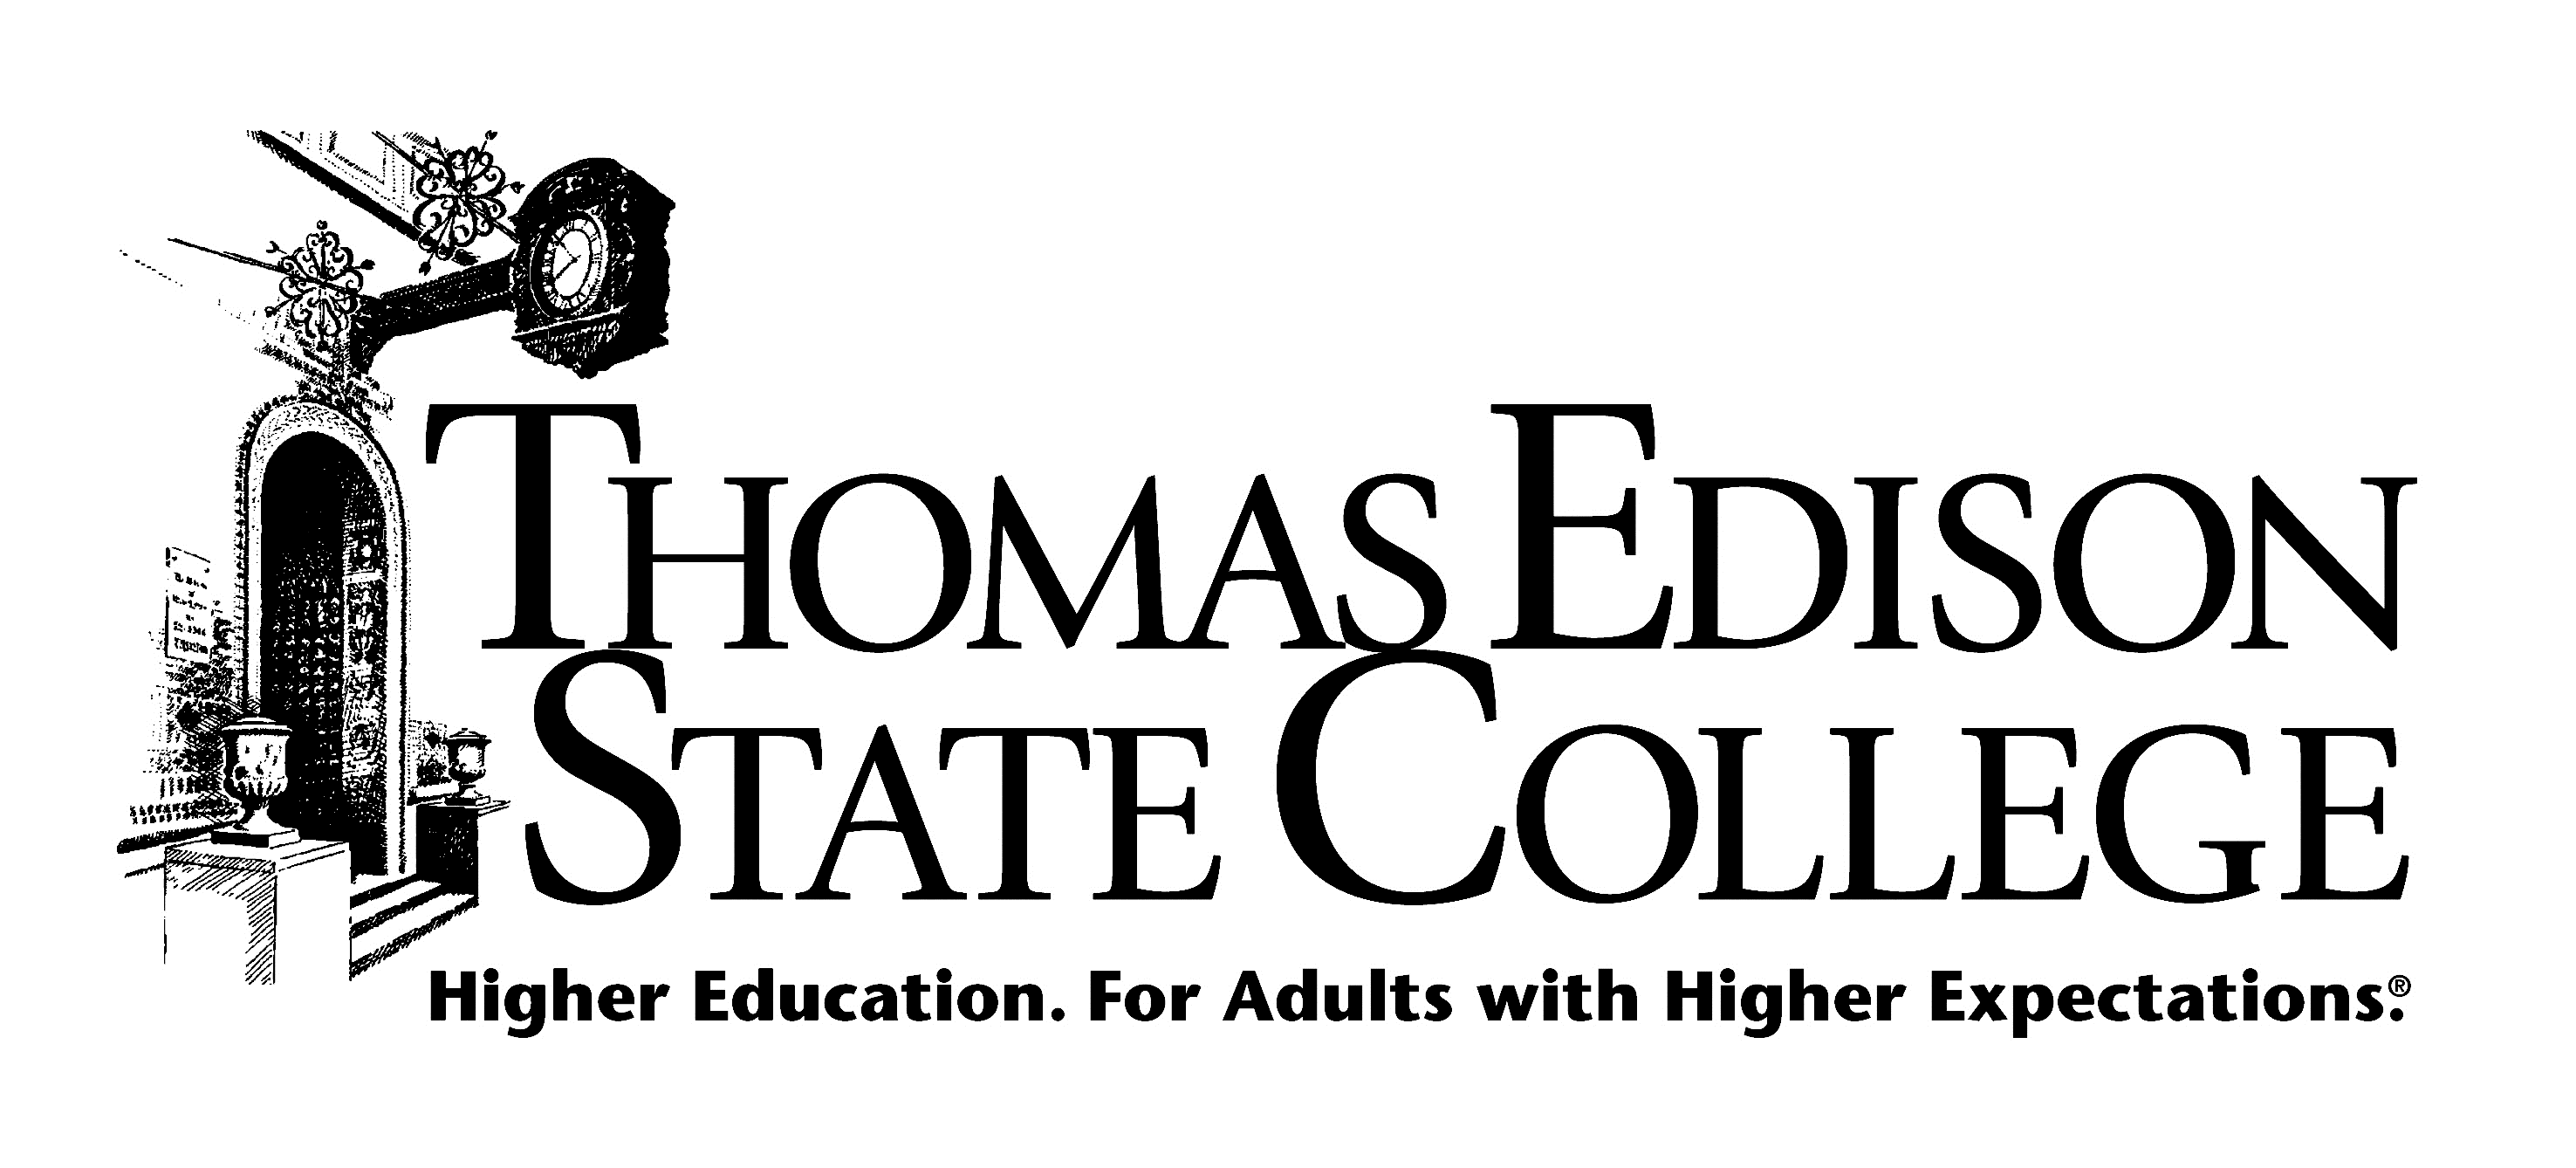 Thomas Edison State College and Dade Moeller Partner to